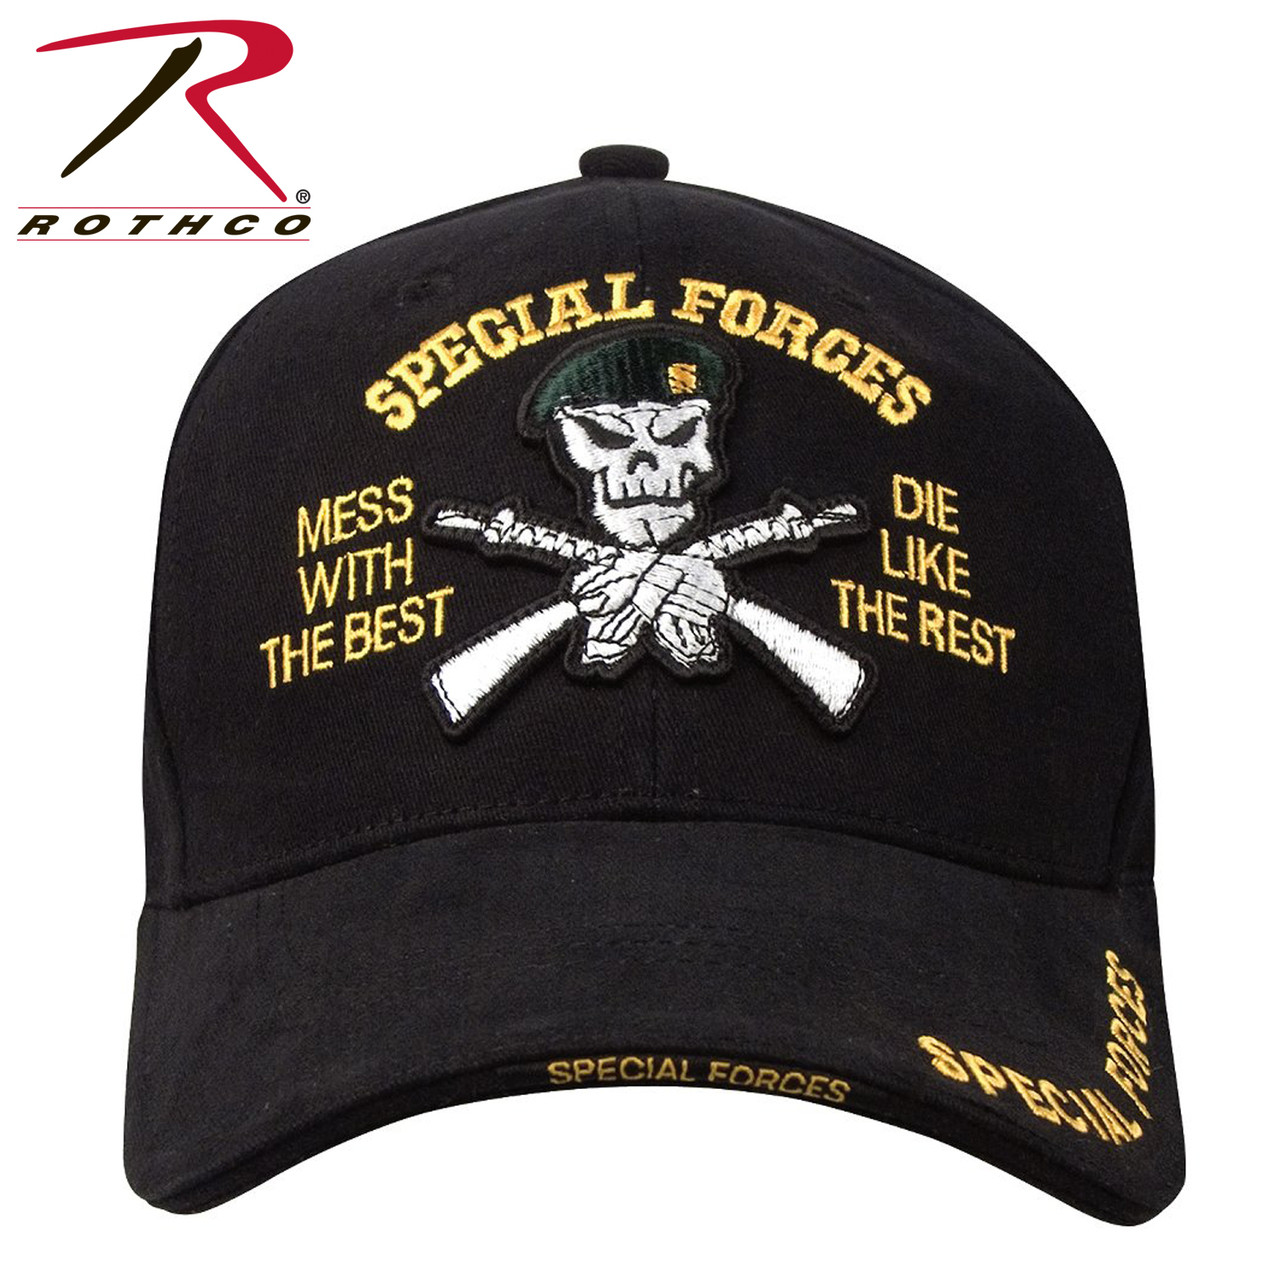 4431df7818e2c Rothco Deluxe Low Profile Special Forces Insignia Cap